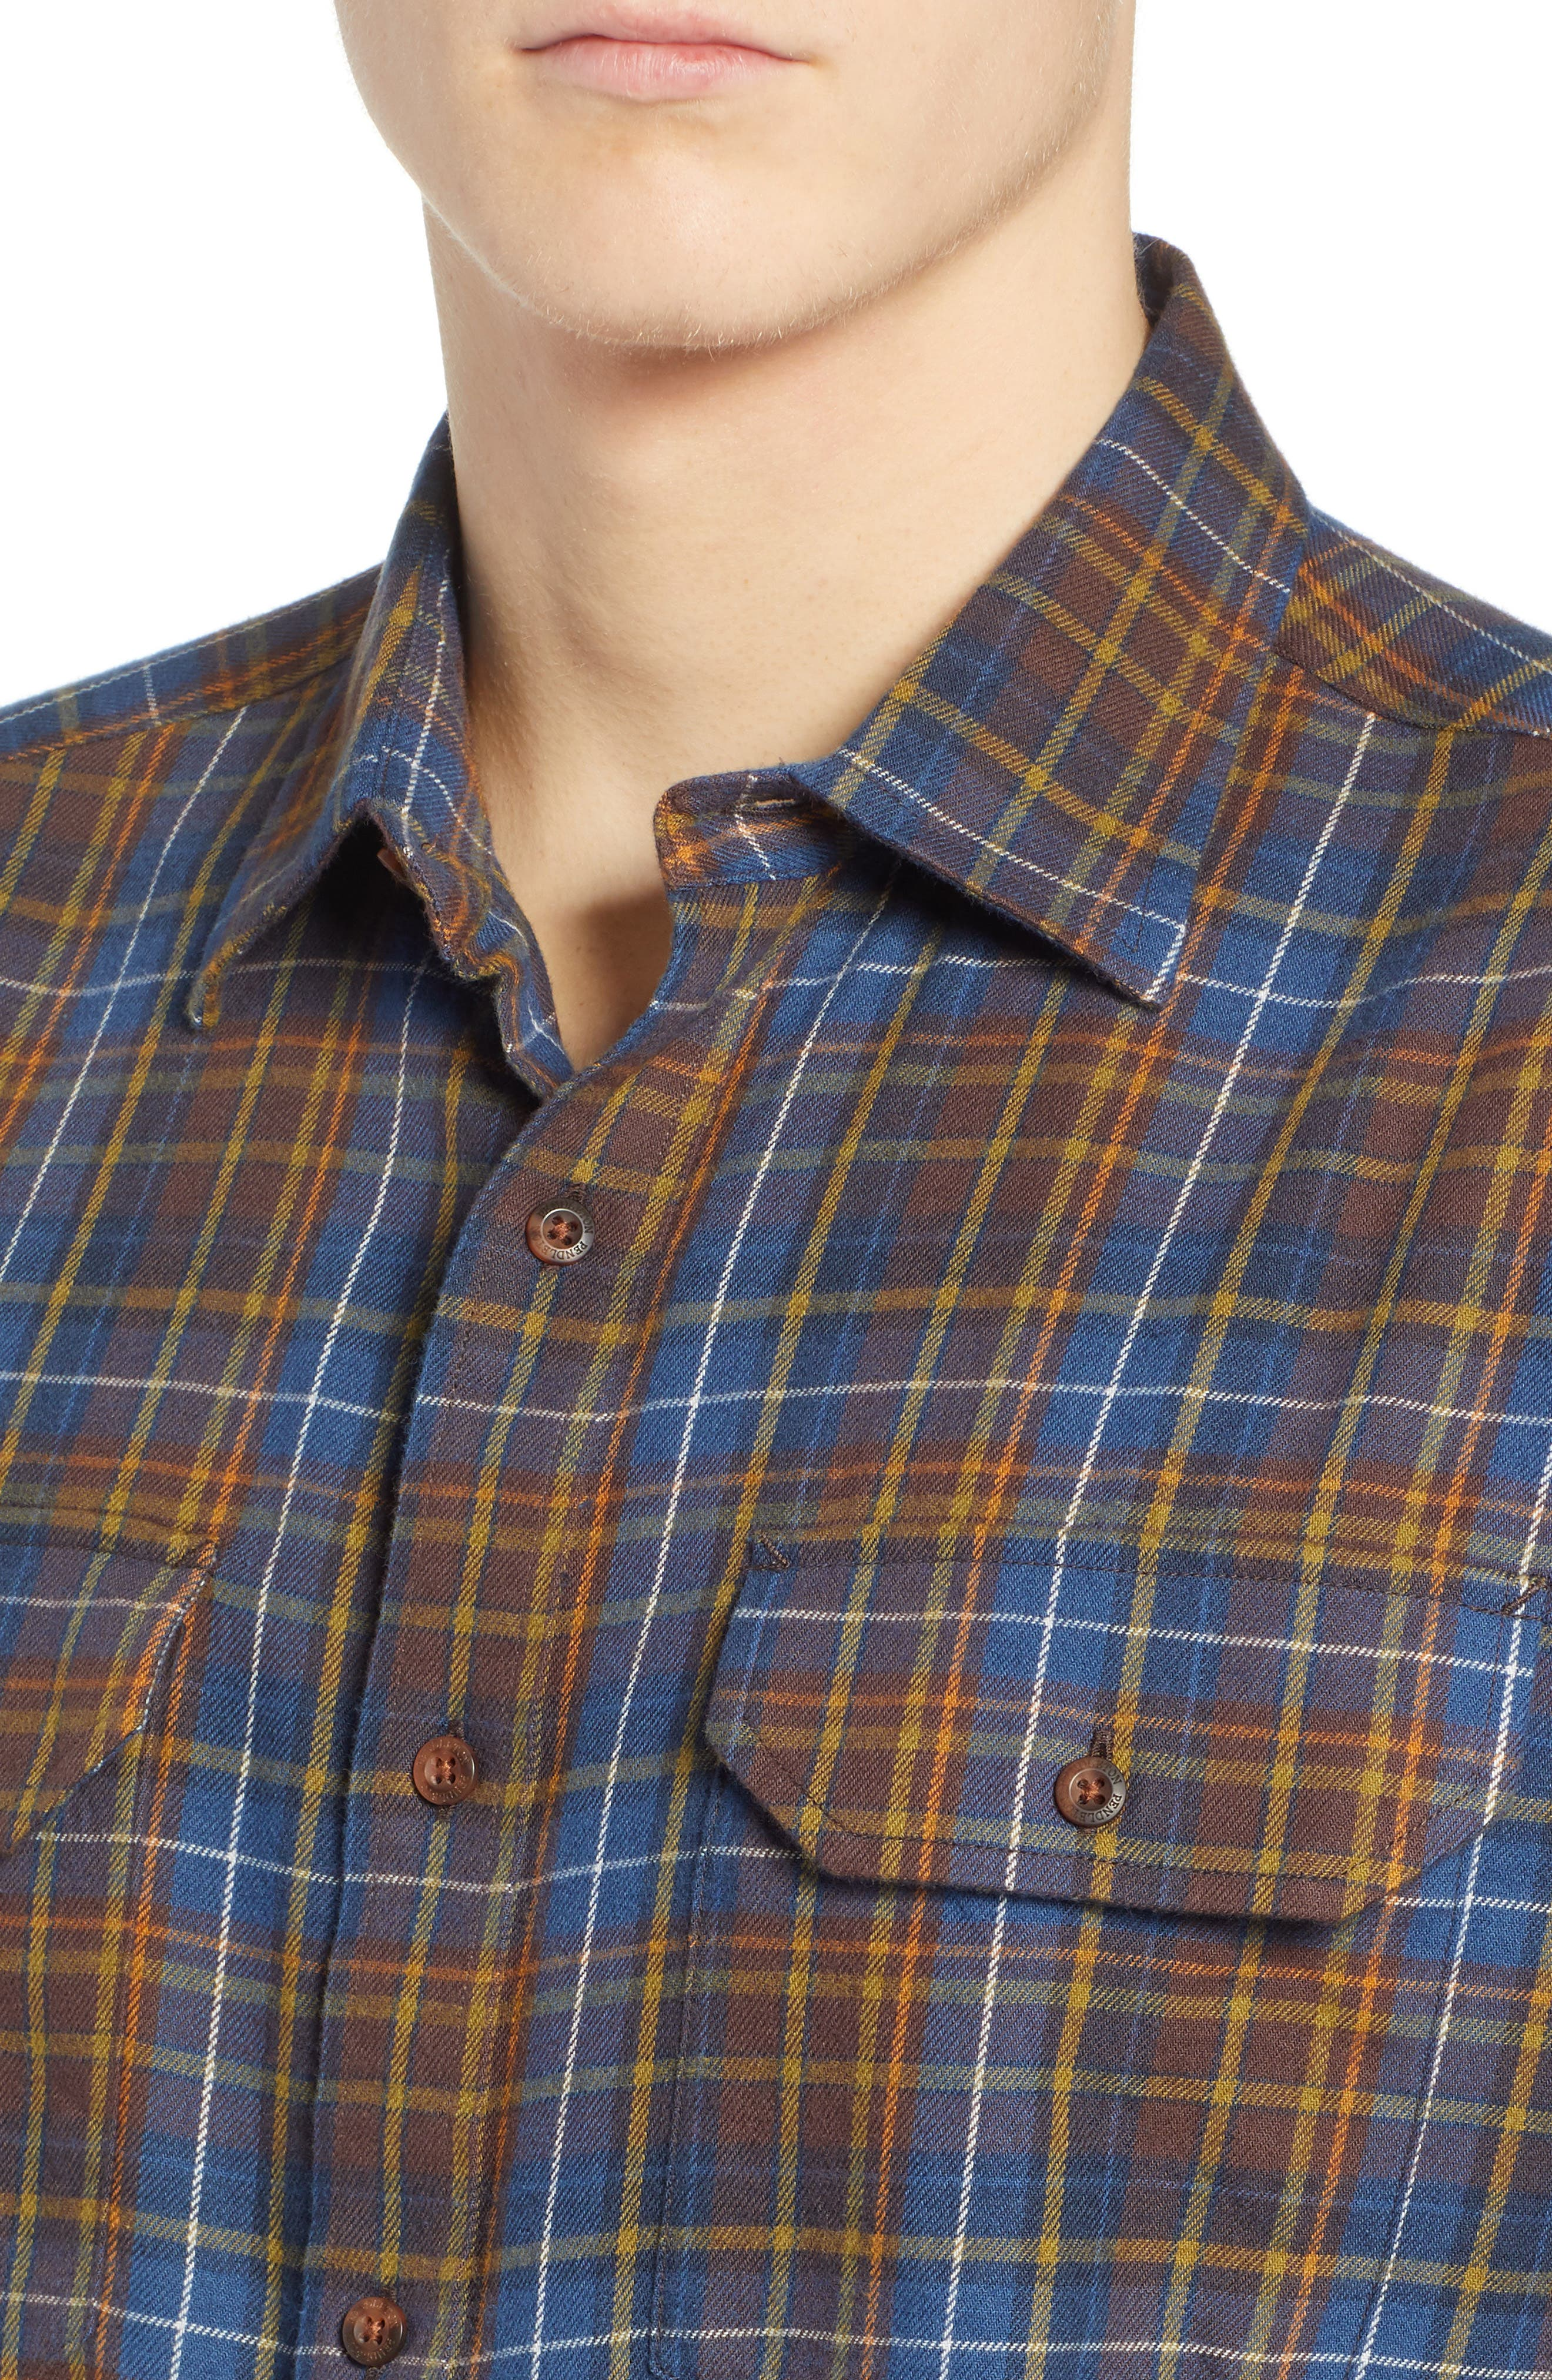 Bridger Plaid Twill Shirt,                             Alternate thumbnail 2, color,                             BLUE/ BROWN/ GREEN PLAID